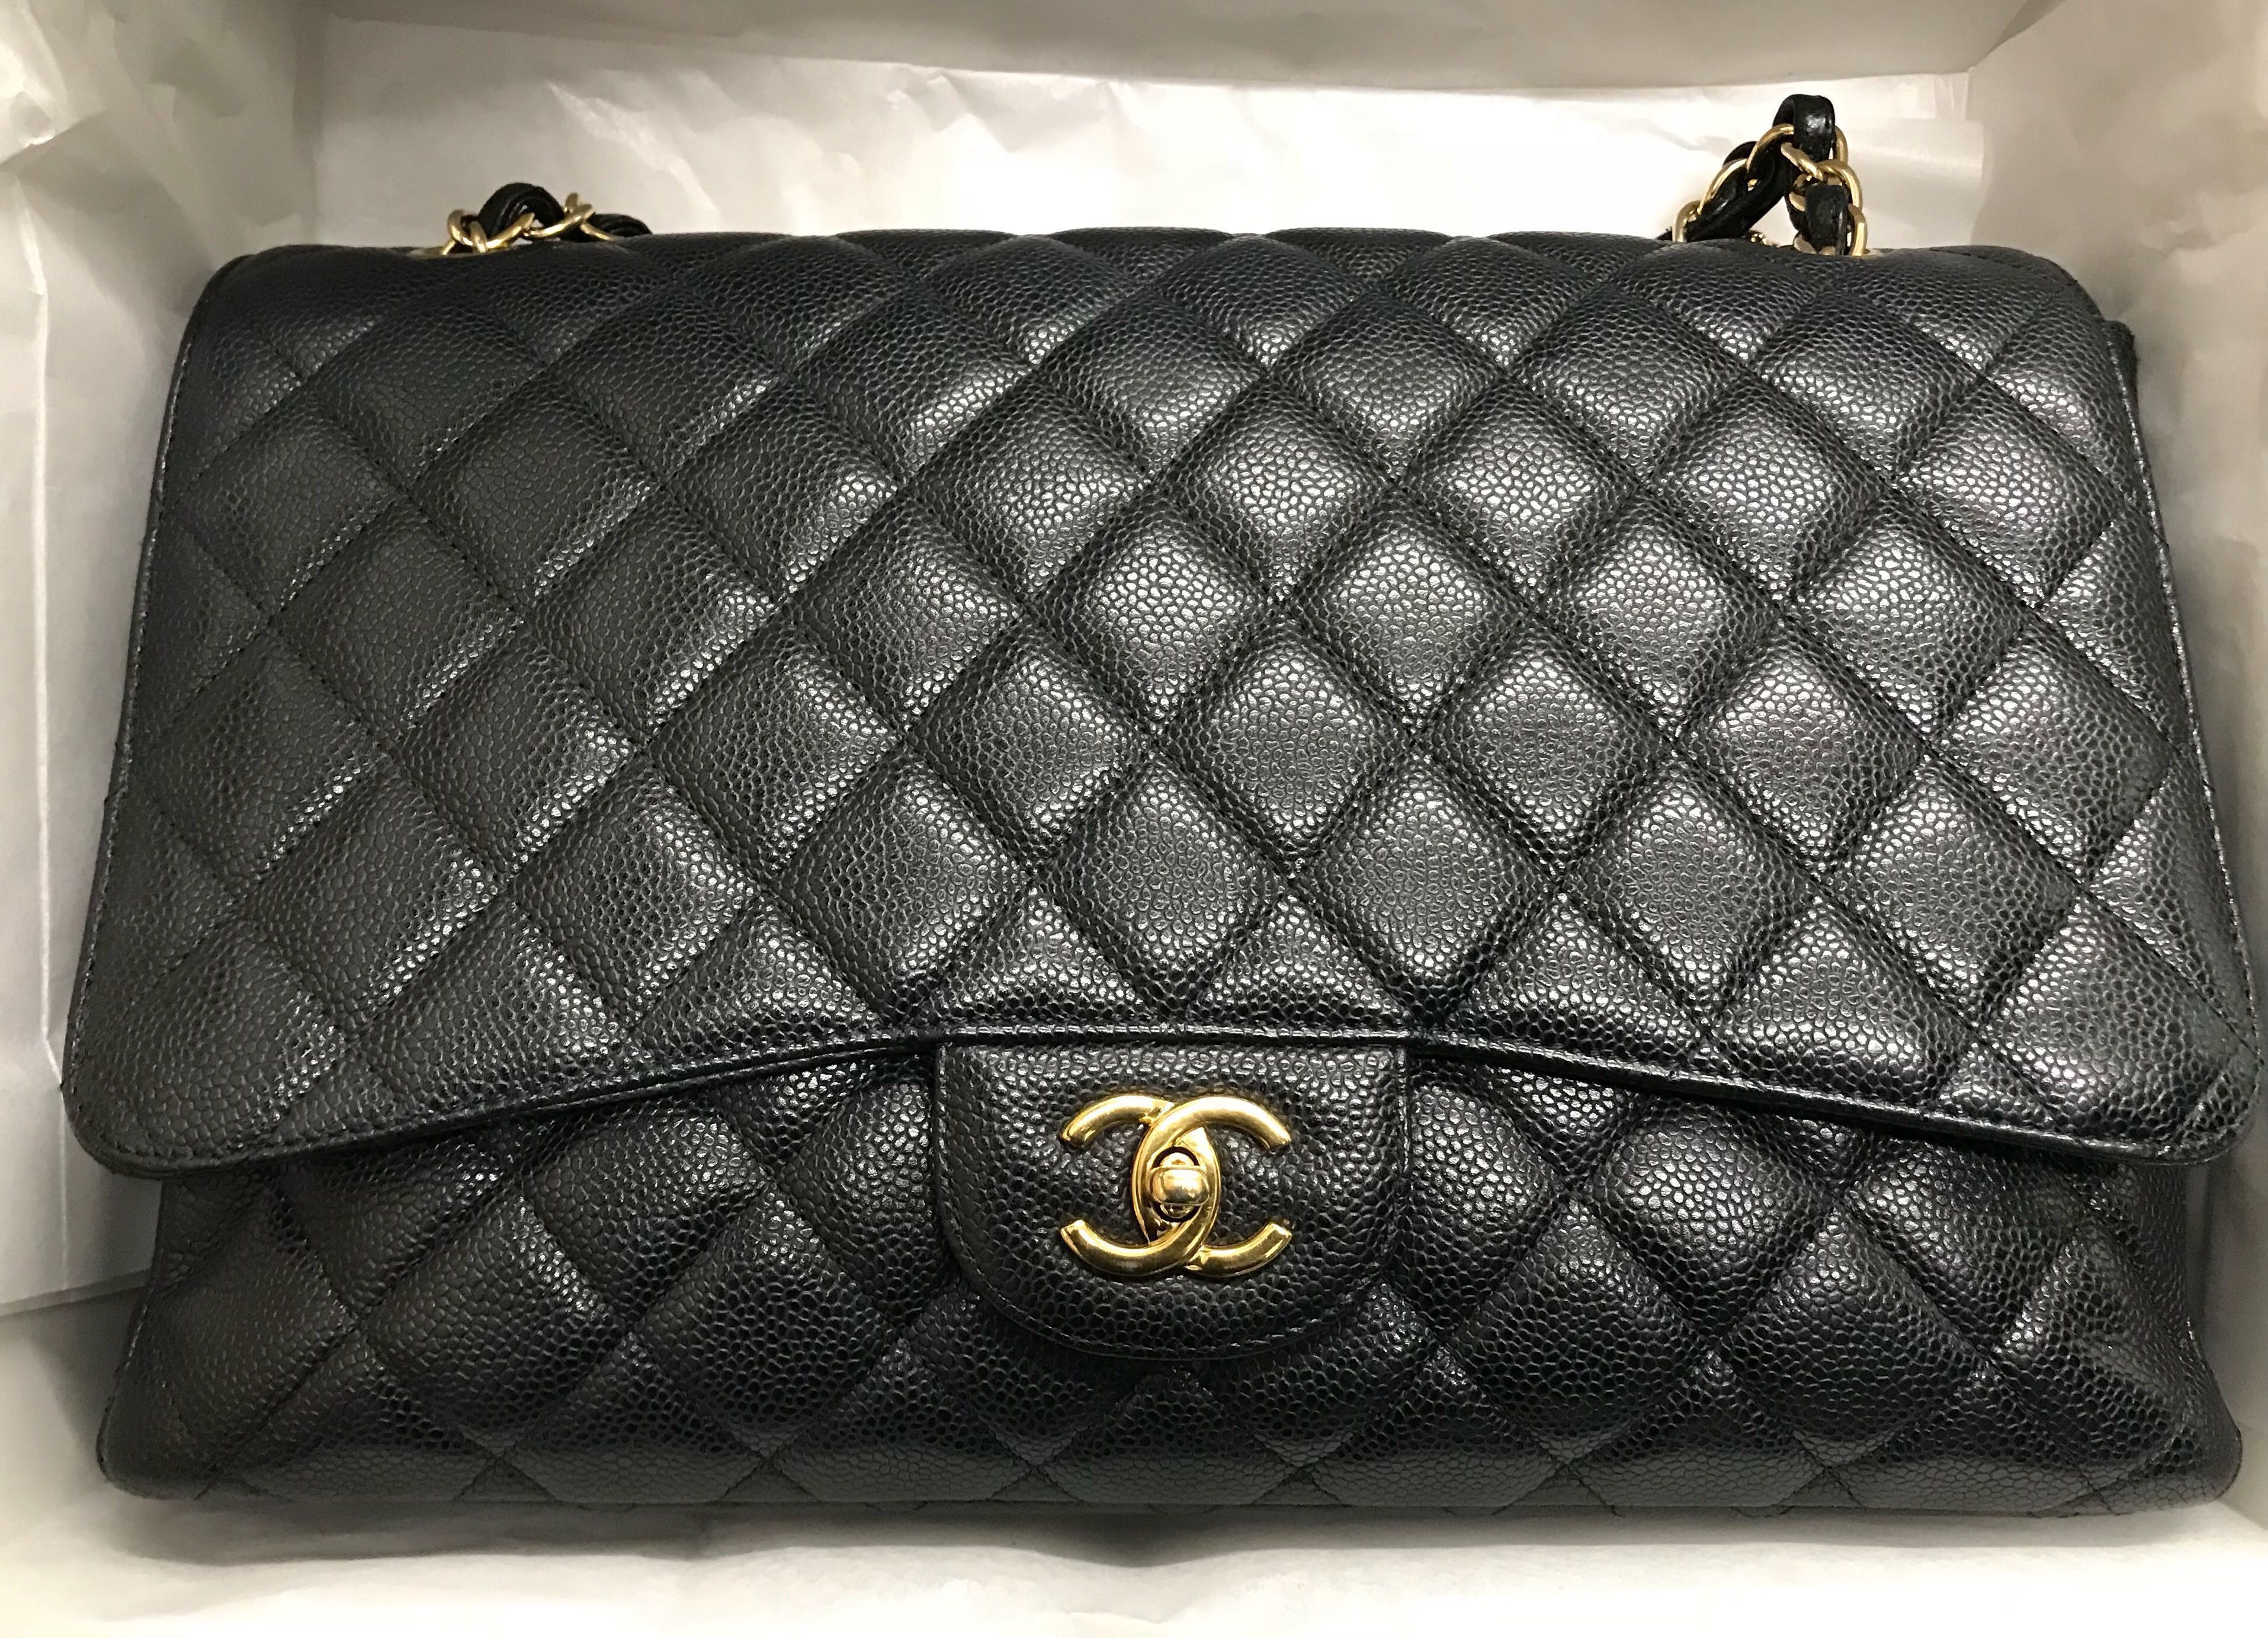 5f42e279f2f39d ❌SOLD!❌Chanel Caviar Maxi Classic S/Flap GHW 14 Series, Luxury, Bags &  Wallets, Handbags on Carousell